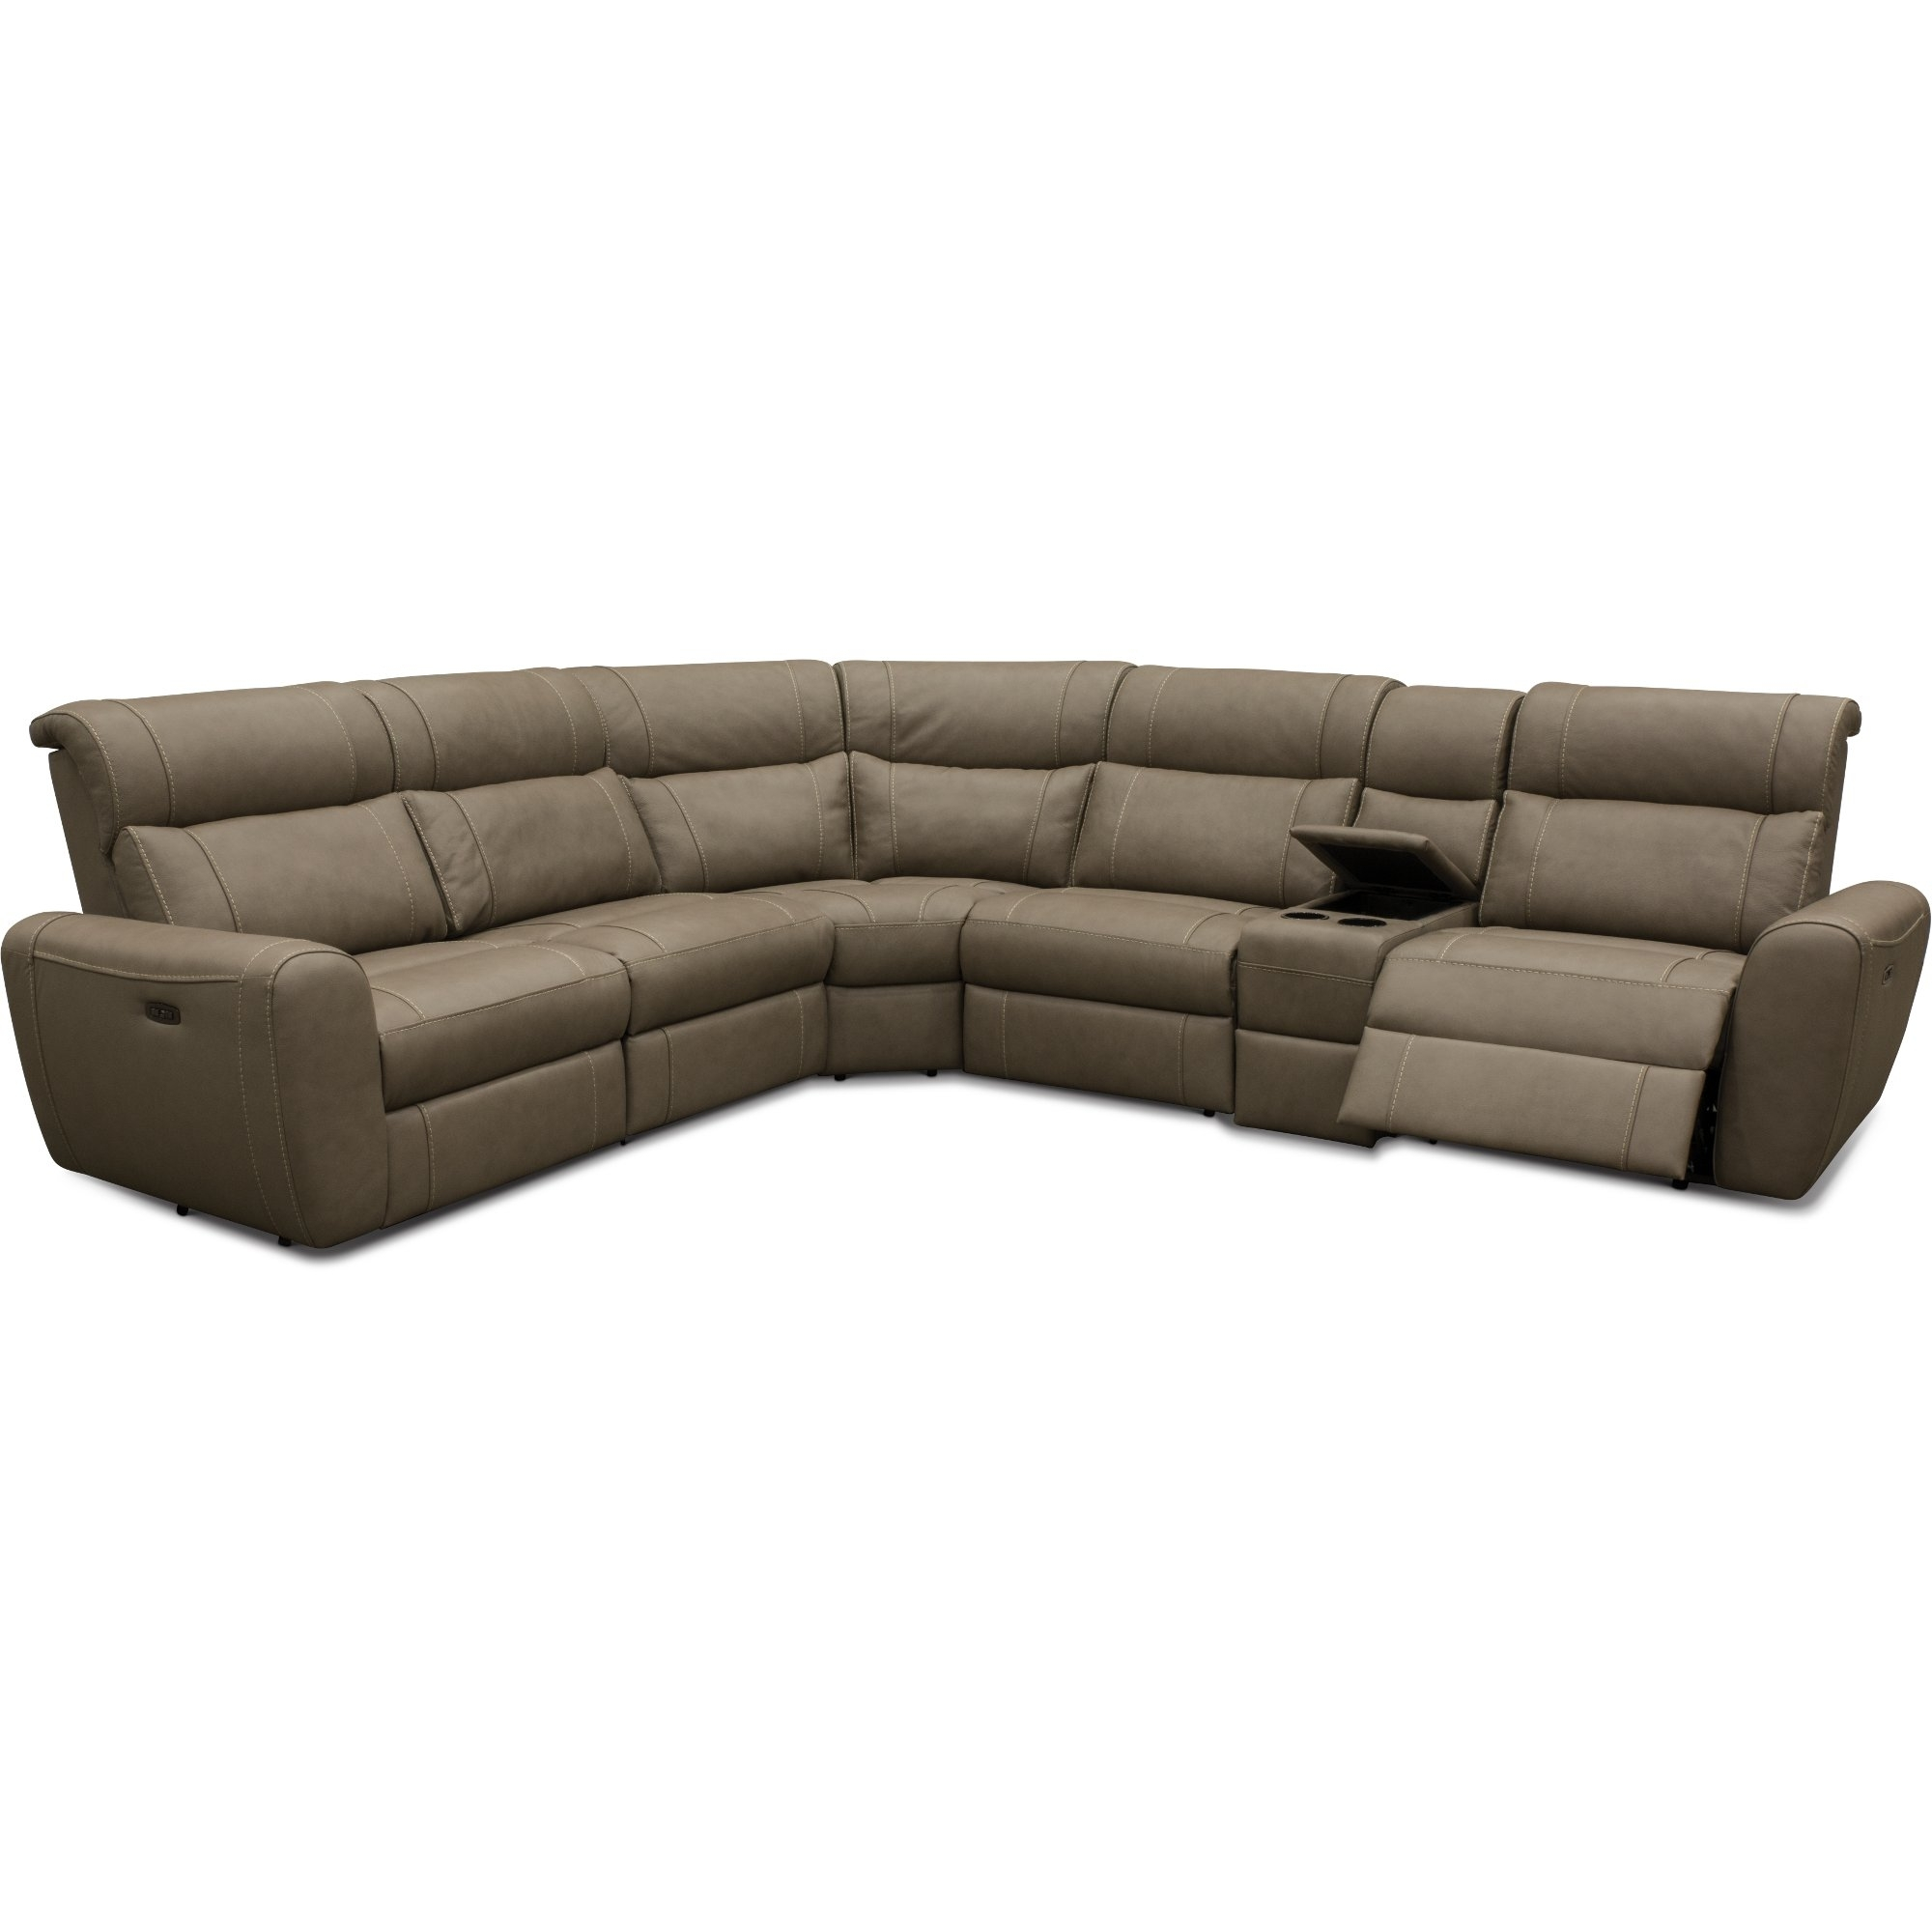 Taupe Leather Match 6 Piece Power Sectional Sofa – Robert | Rc Pertaining To Denali Charcoal Grey 6 Piece Reclining Sectionals With 2 Power Headrests (Image 25 of 25)